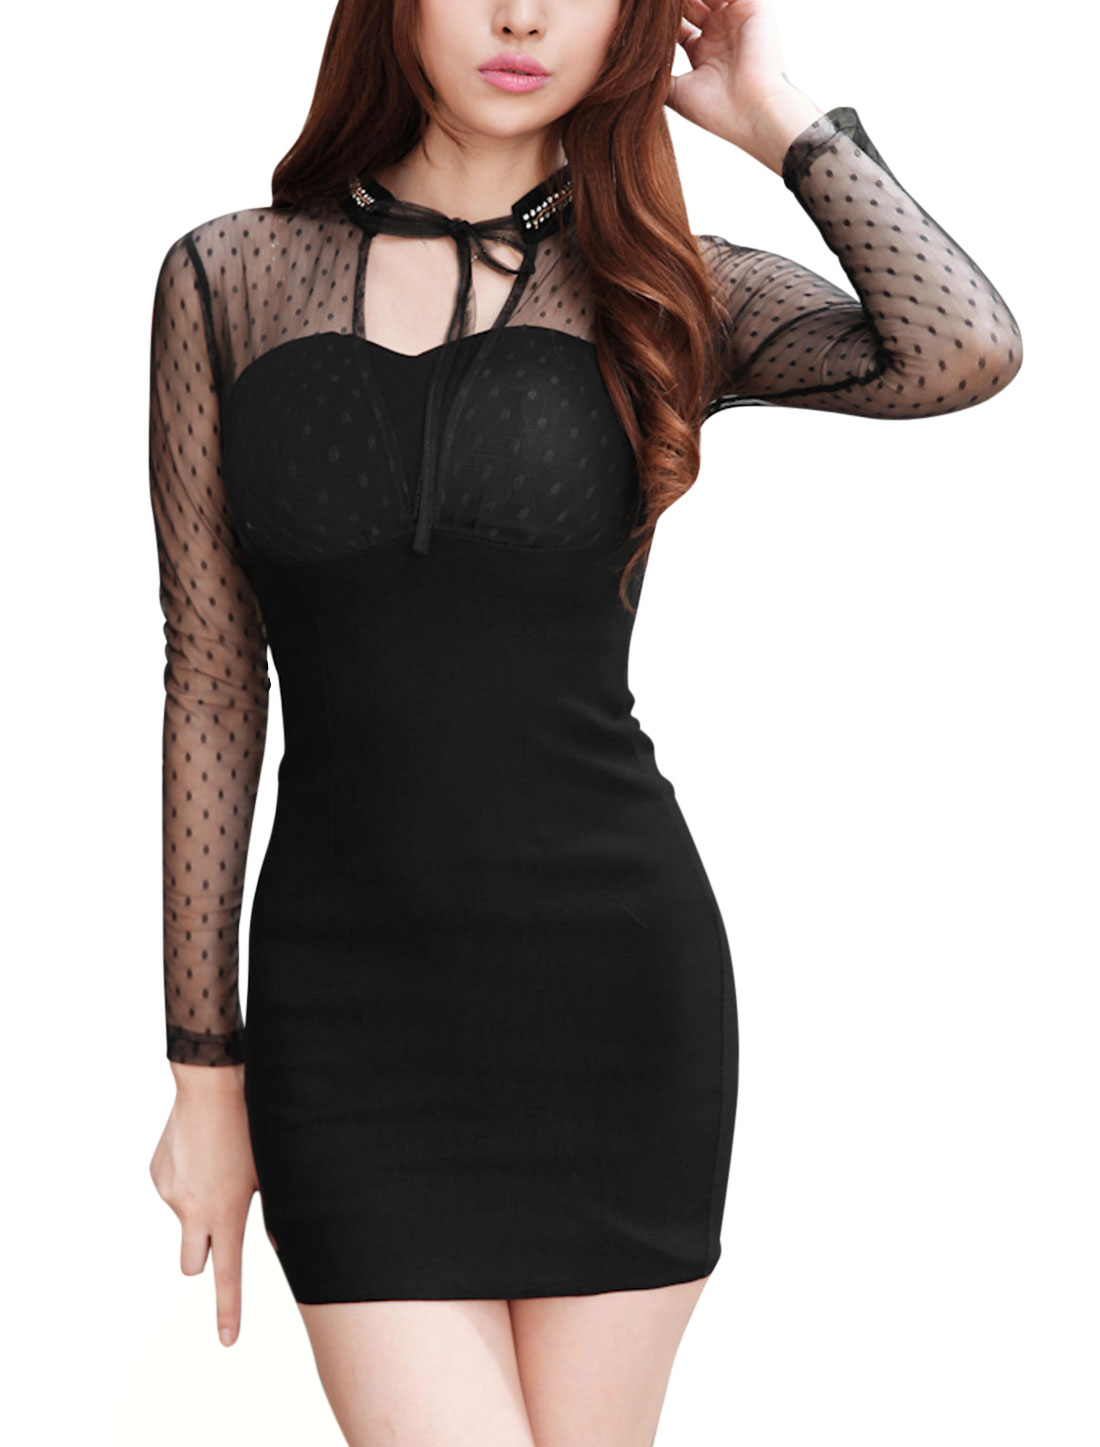 Women Mesh Panel Long Sleeves Slim Fit Sheath Dress Black XS